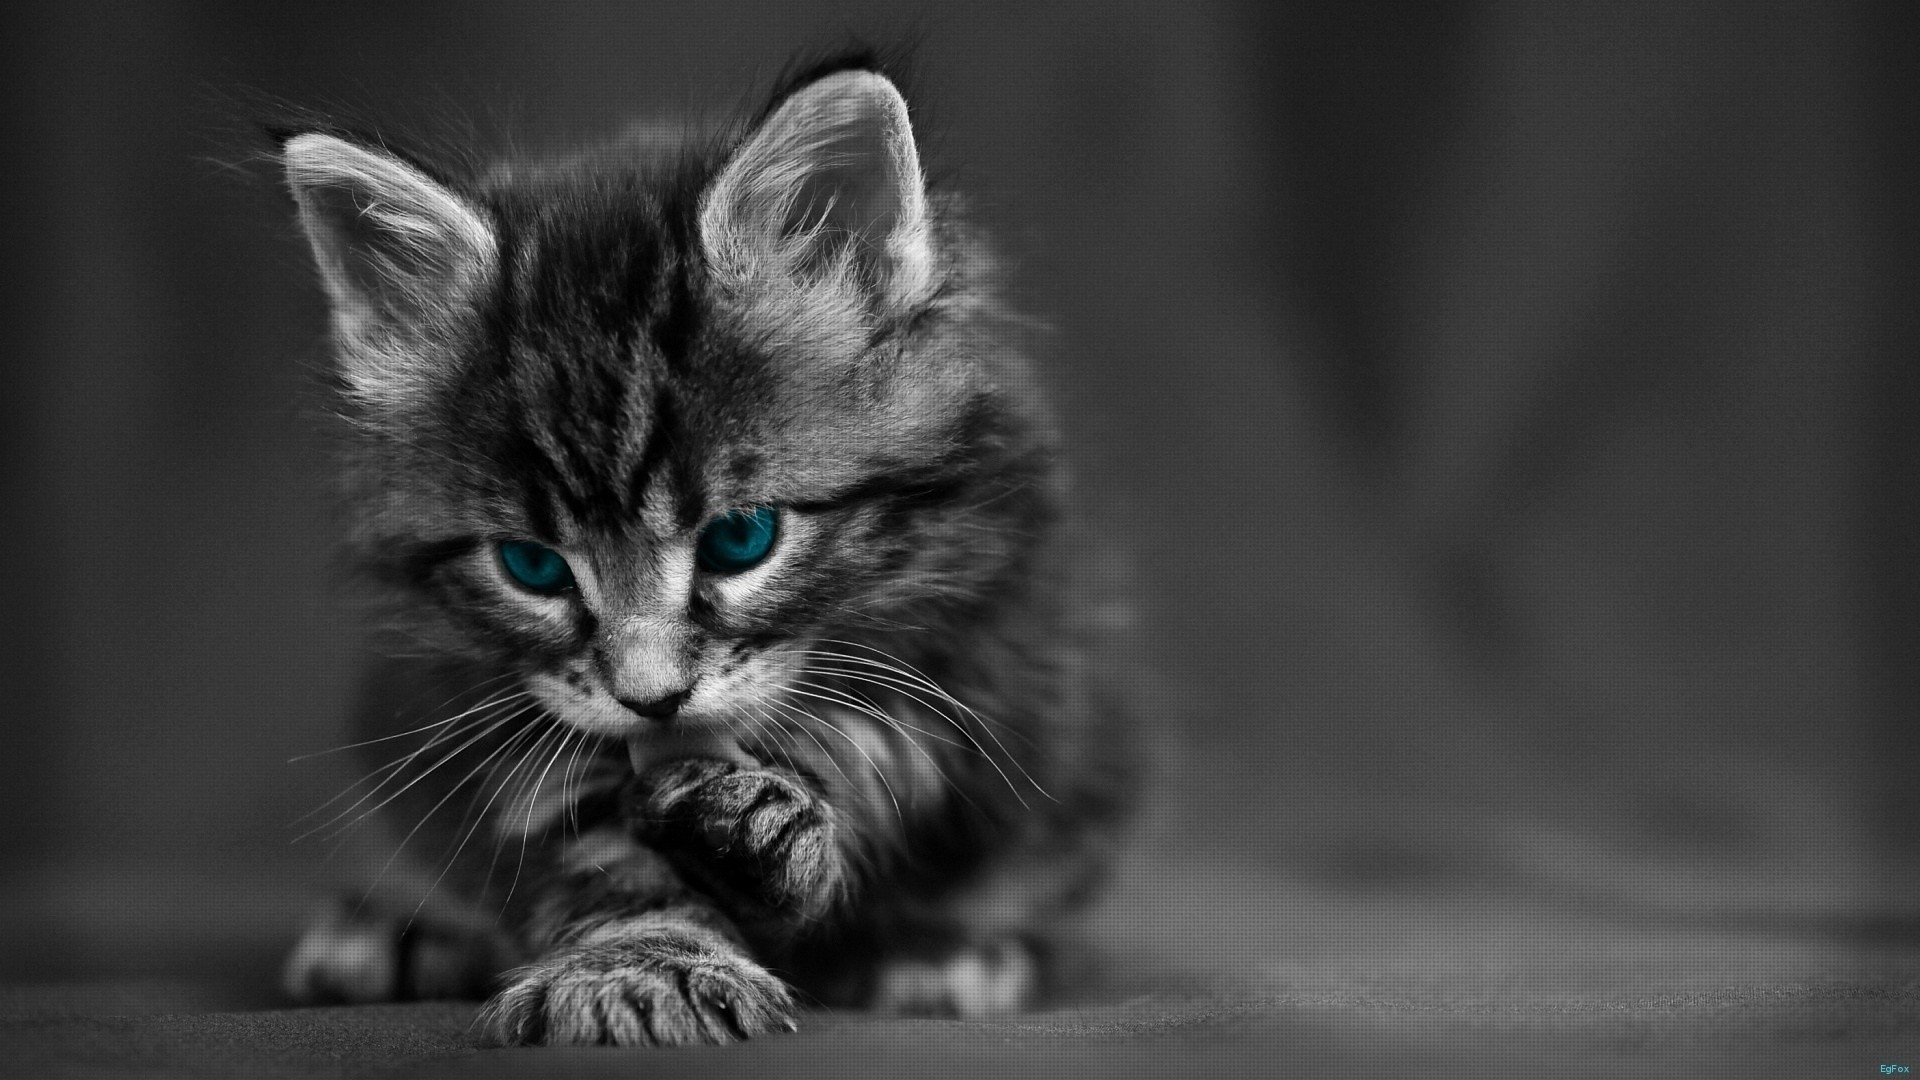 Preview Wallpaper Cat Black White Blue Eyes Baby Cute Cat Black And White 1920x1080 Download Hd Wallpaper Wallpapertip